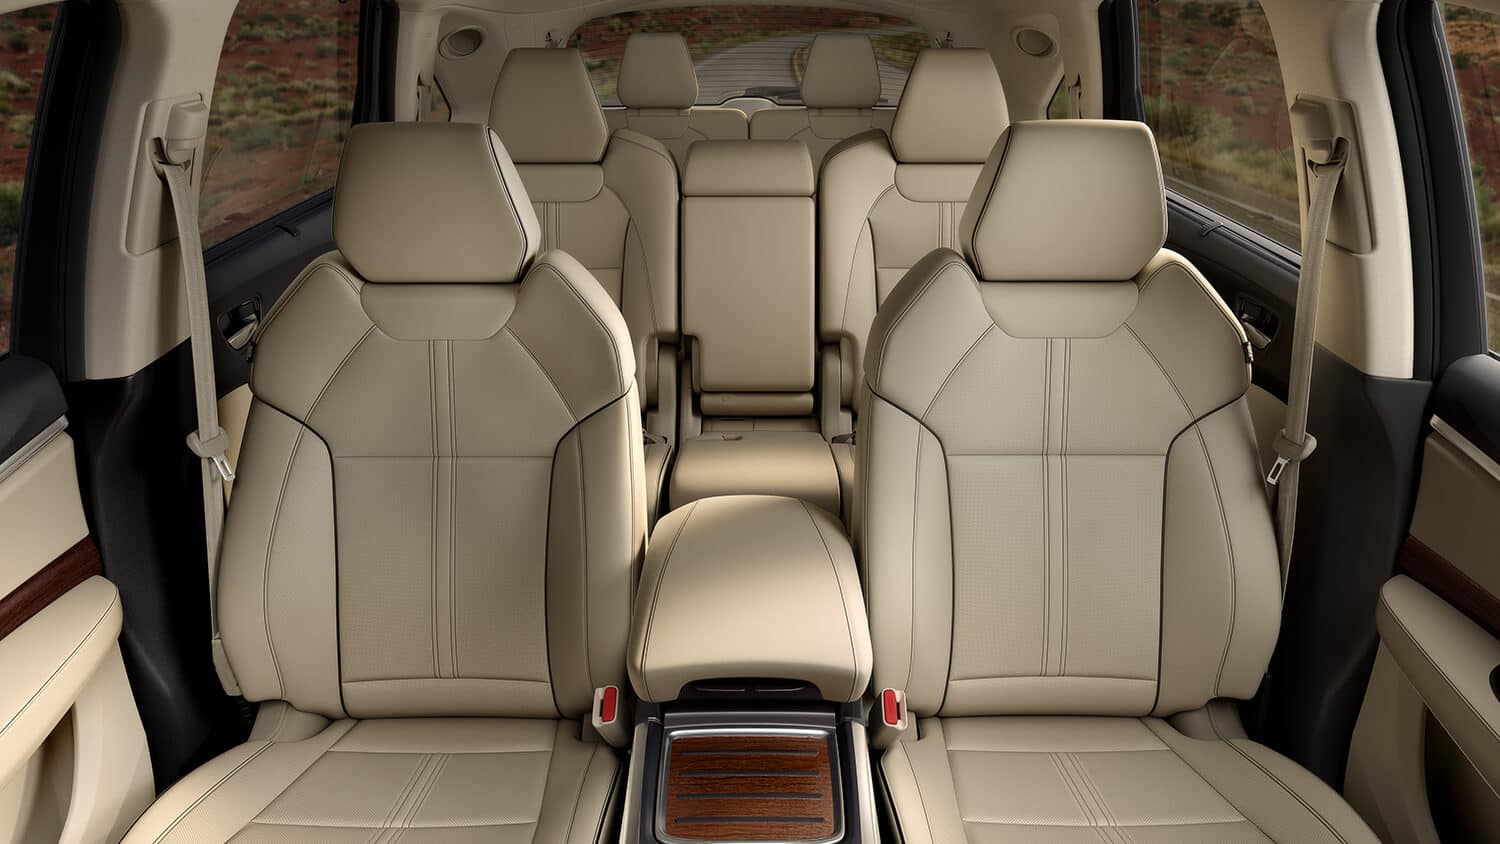 2018 Acura MDX Interior Seating Front Angle